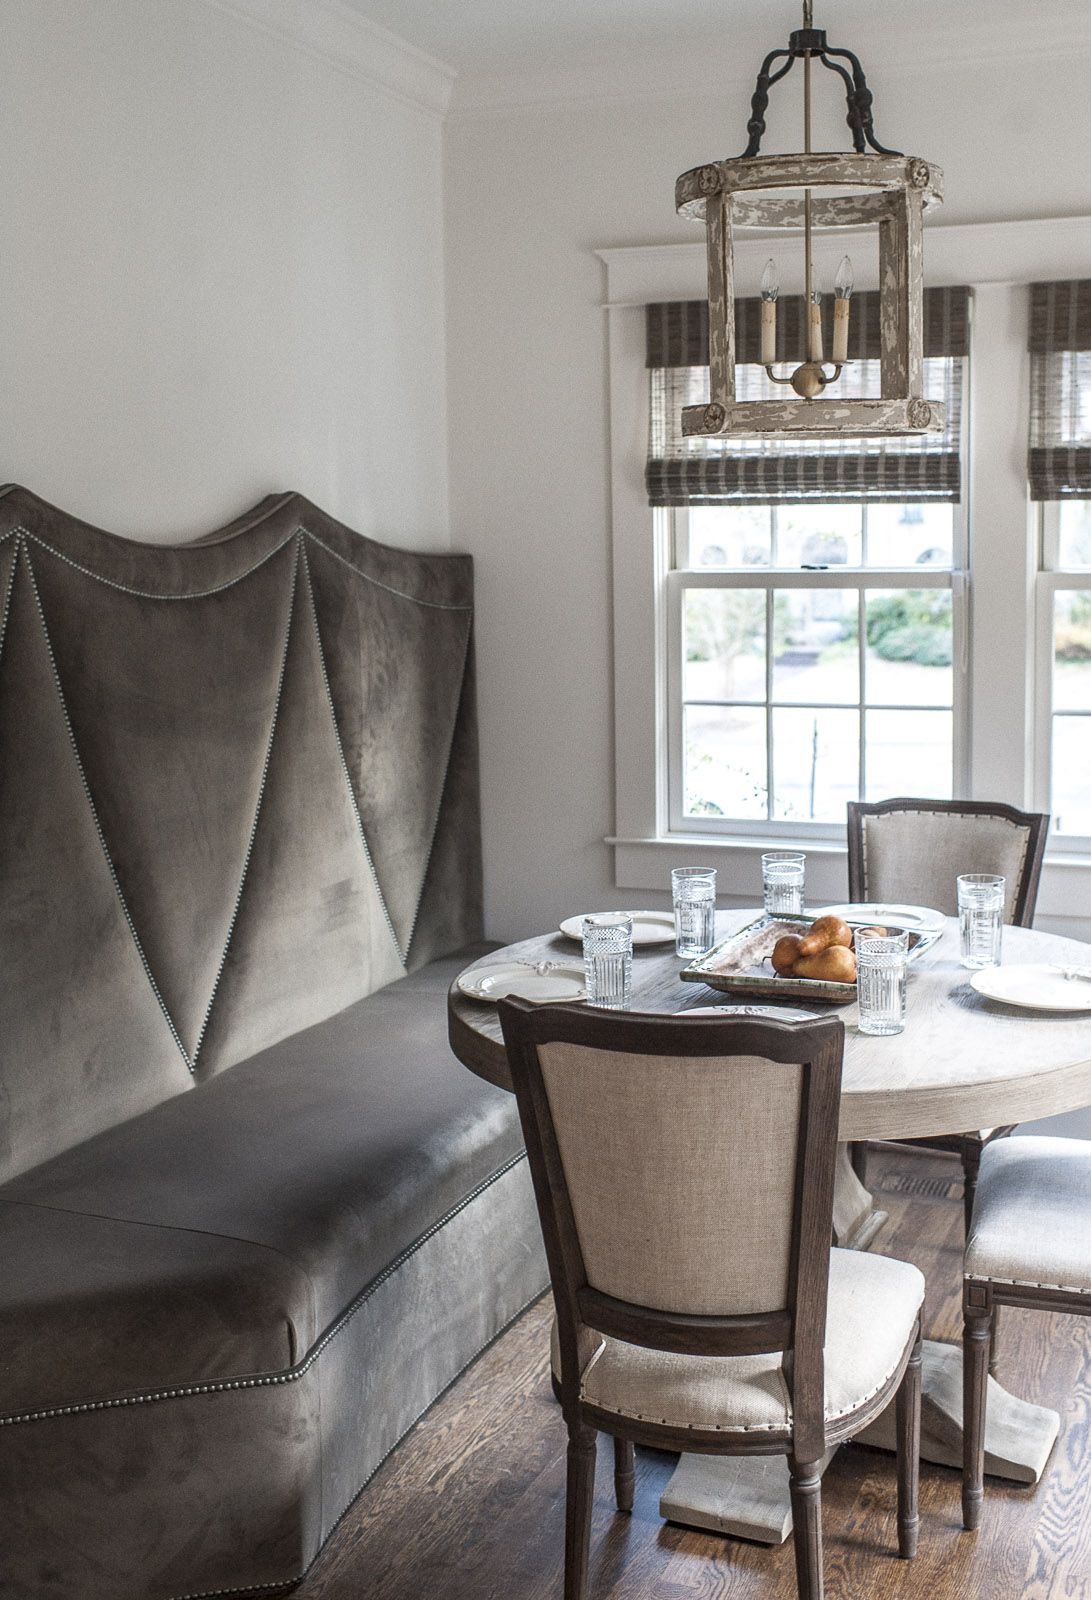 Stunning Breakfast Room Features A Curved Gray Velvet Banquette With Silver Nailhead Trim Facing Reclaimed Wood Dining Table Lined French